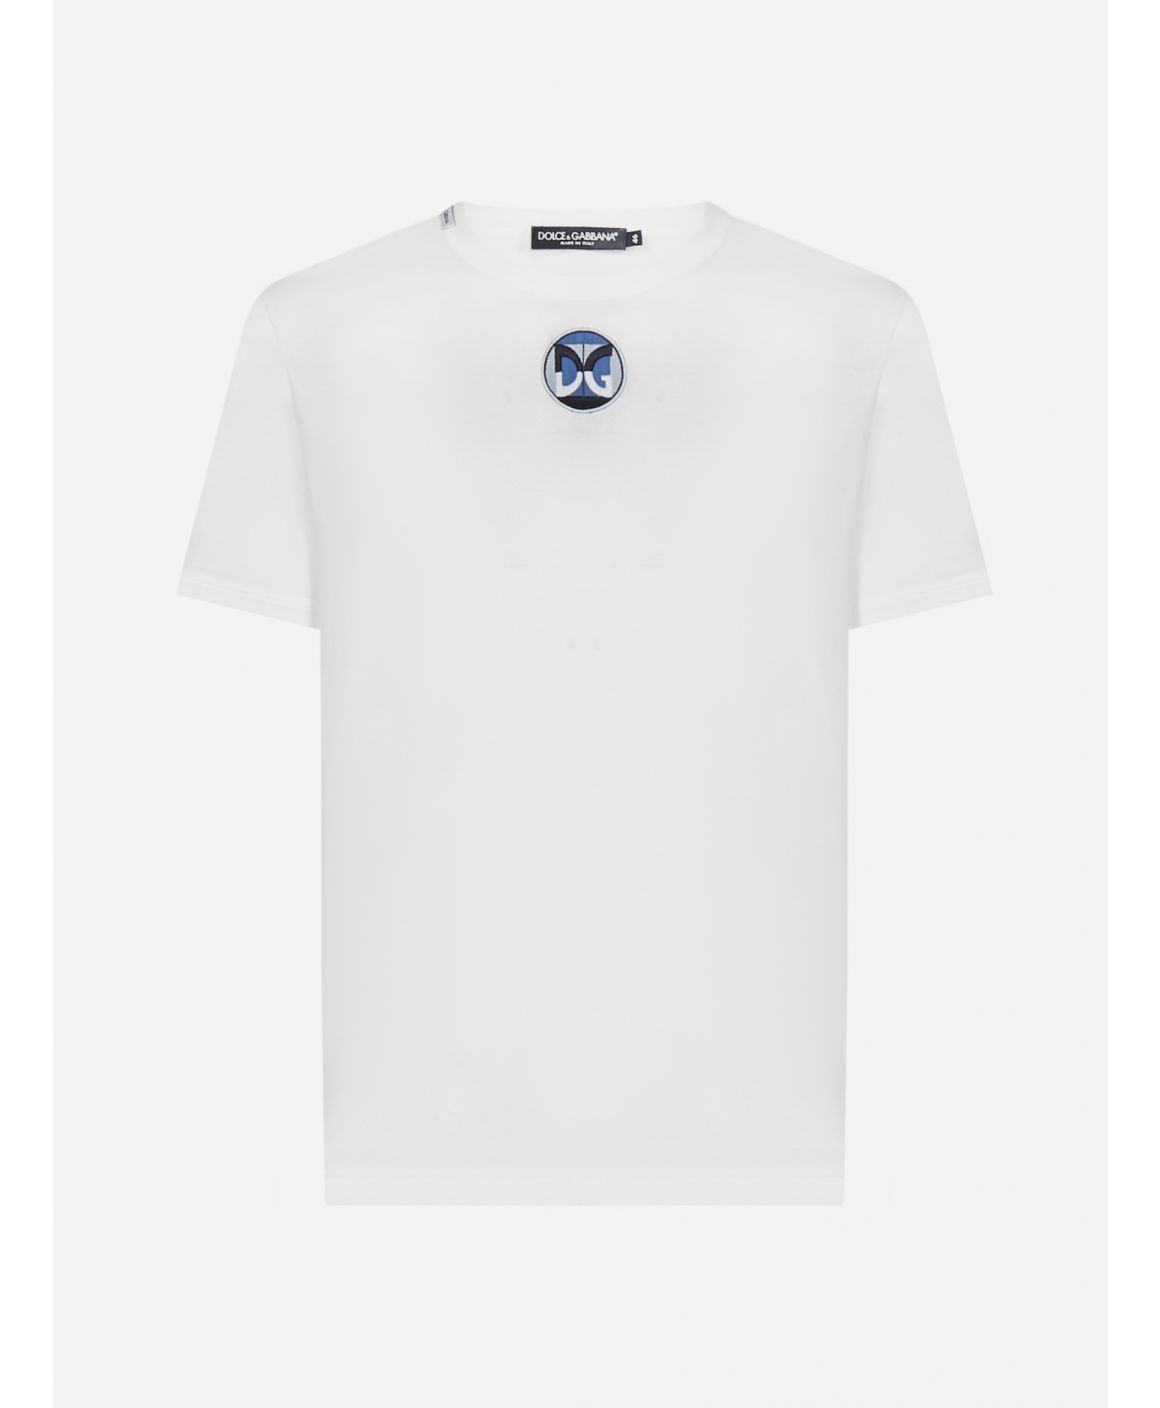 DG logo cotton t-shirt